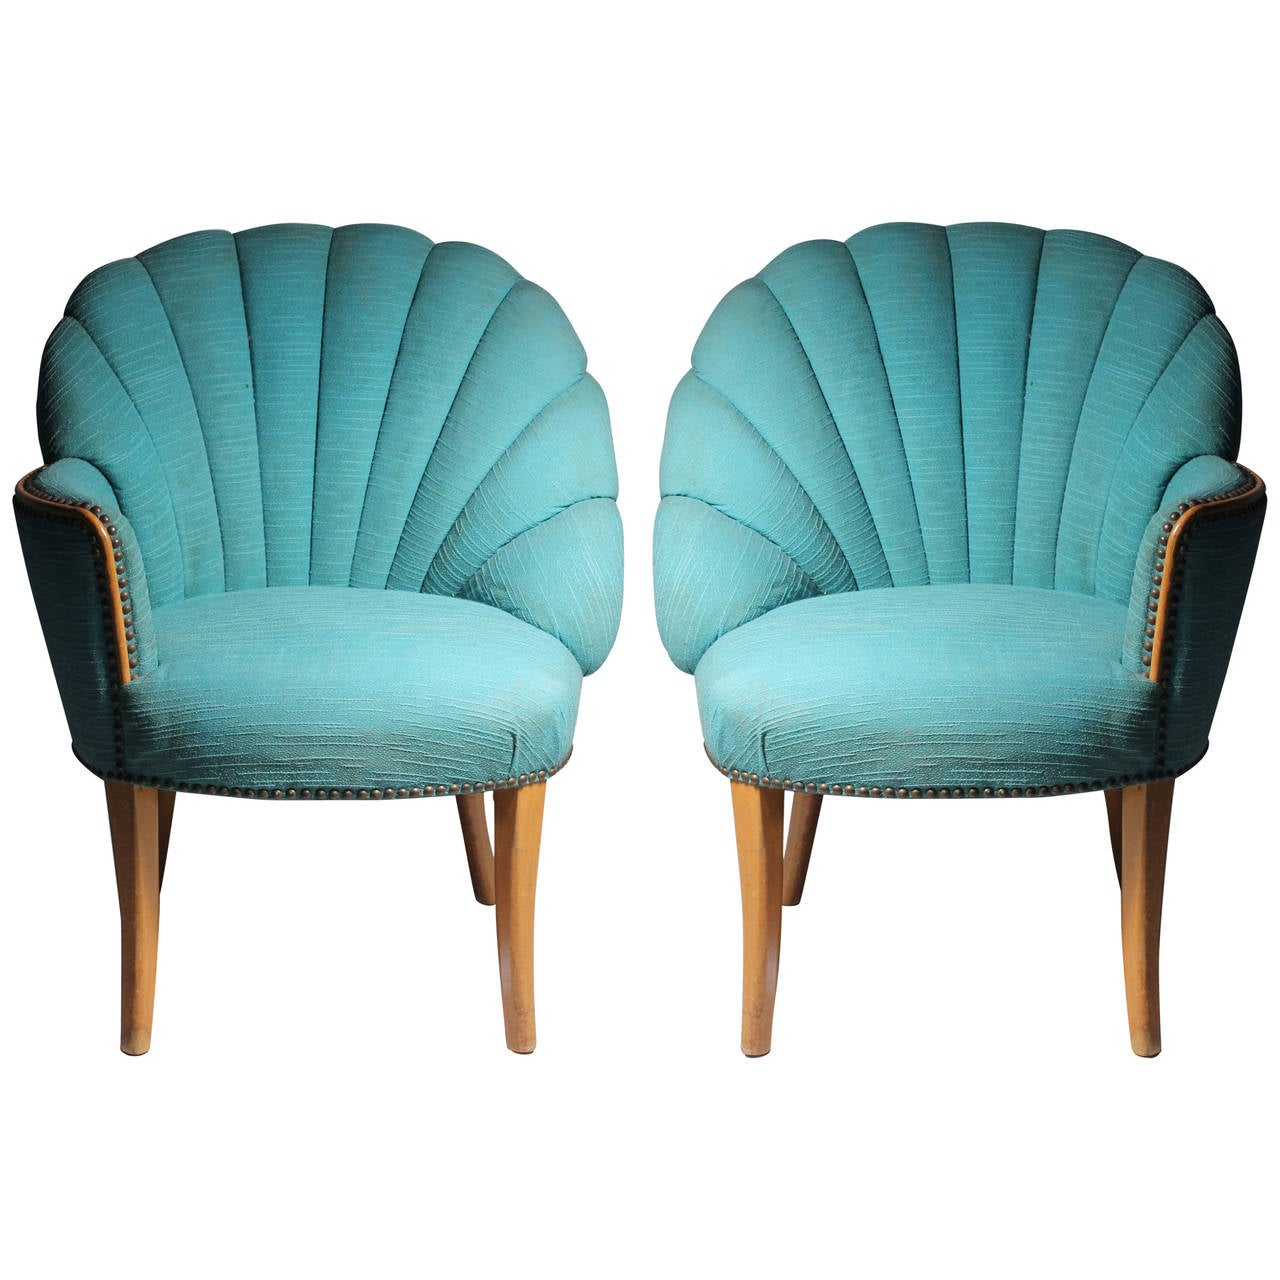 Delicieux Vintage Asymmetrical Hollywood Regency Fan Back Chairs   Grosfeld House For  Sale